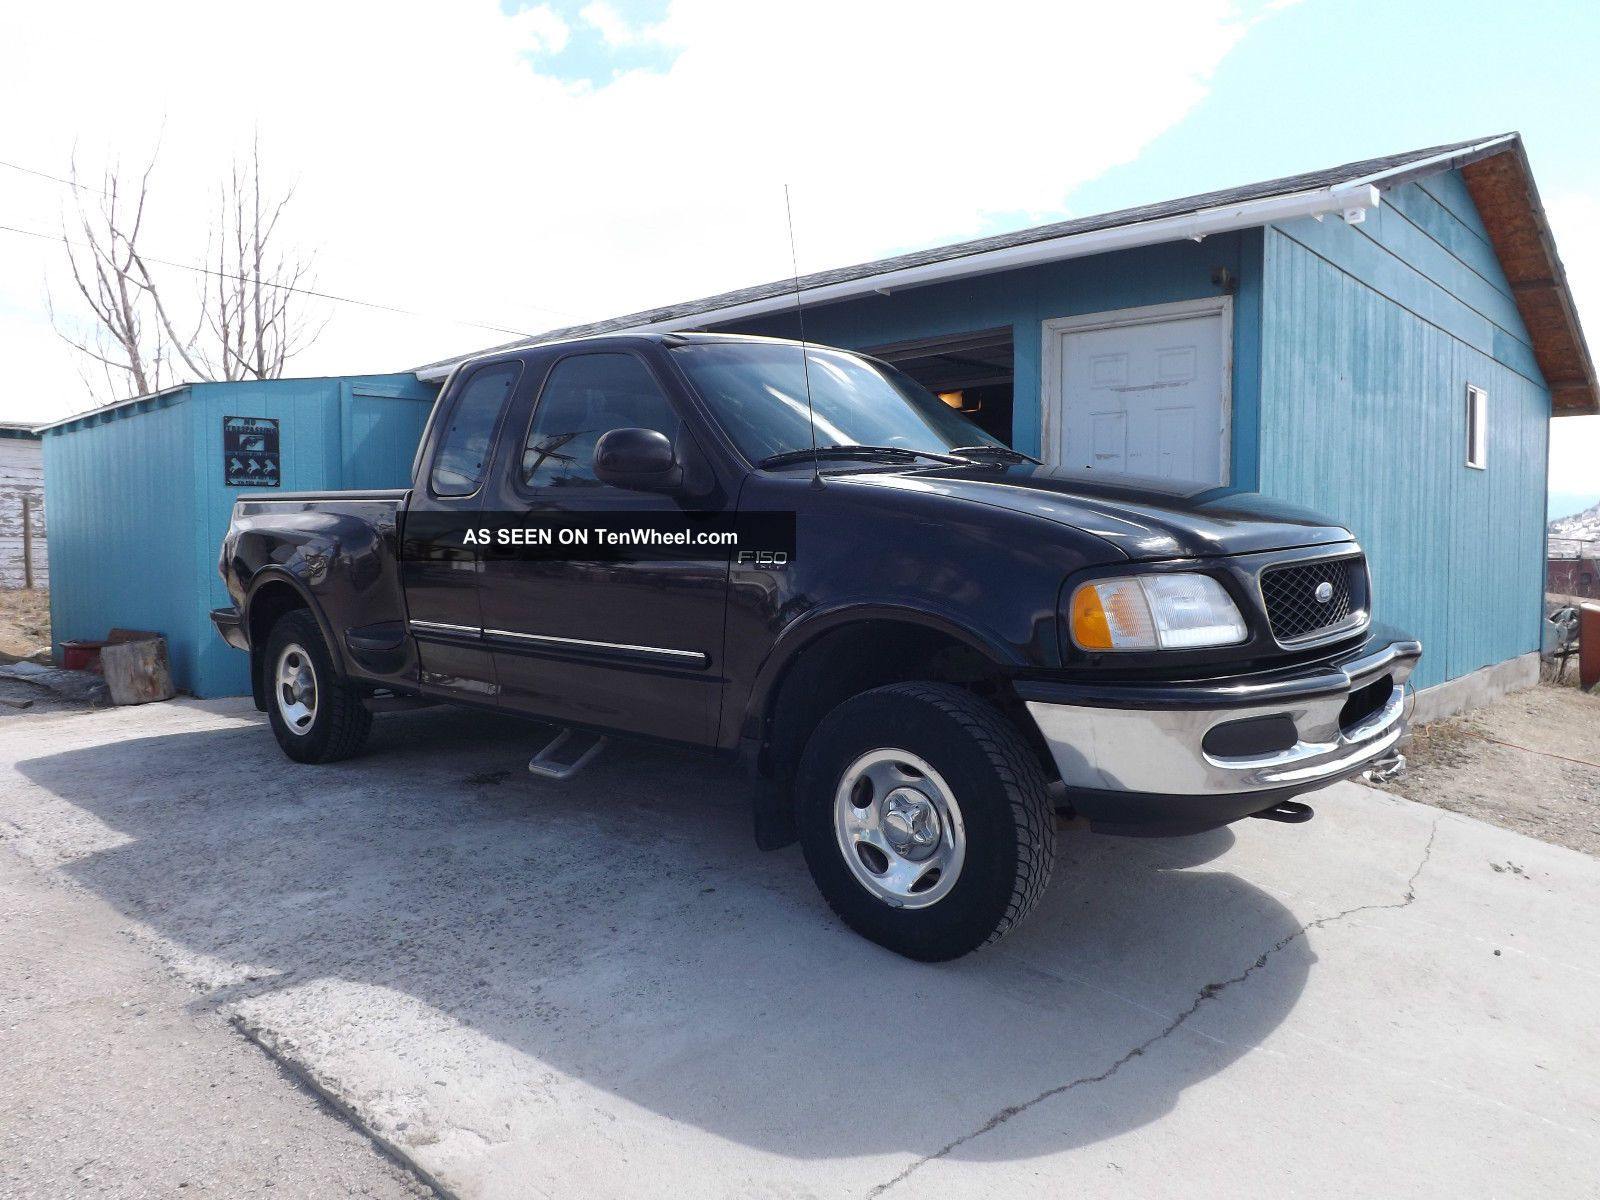 1997 ford f150 stepside extended cab 4x4 triton 4 6. Black Bedroom Furniture Sets. Home Design Ideas